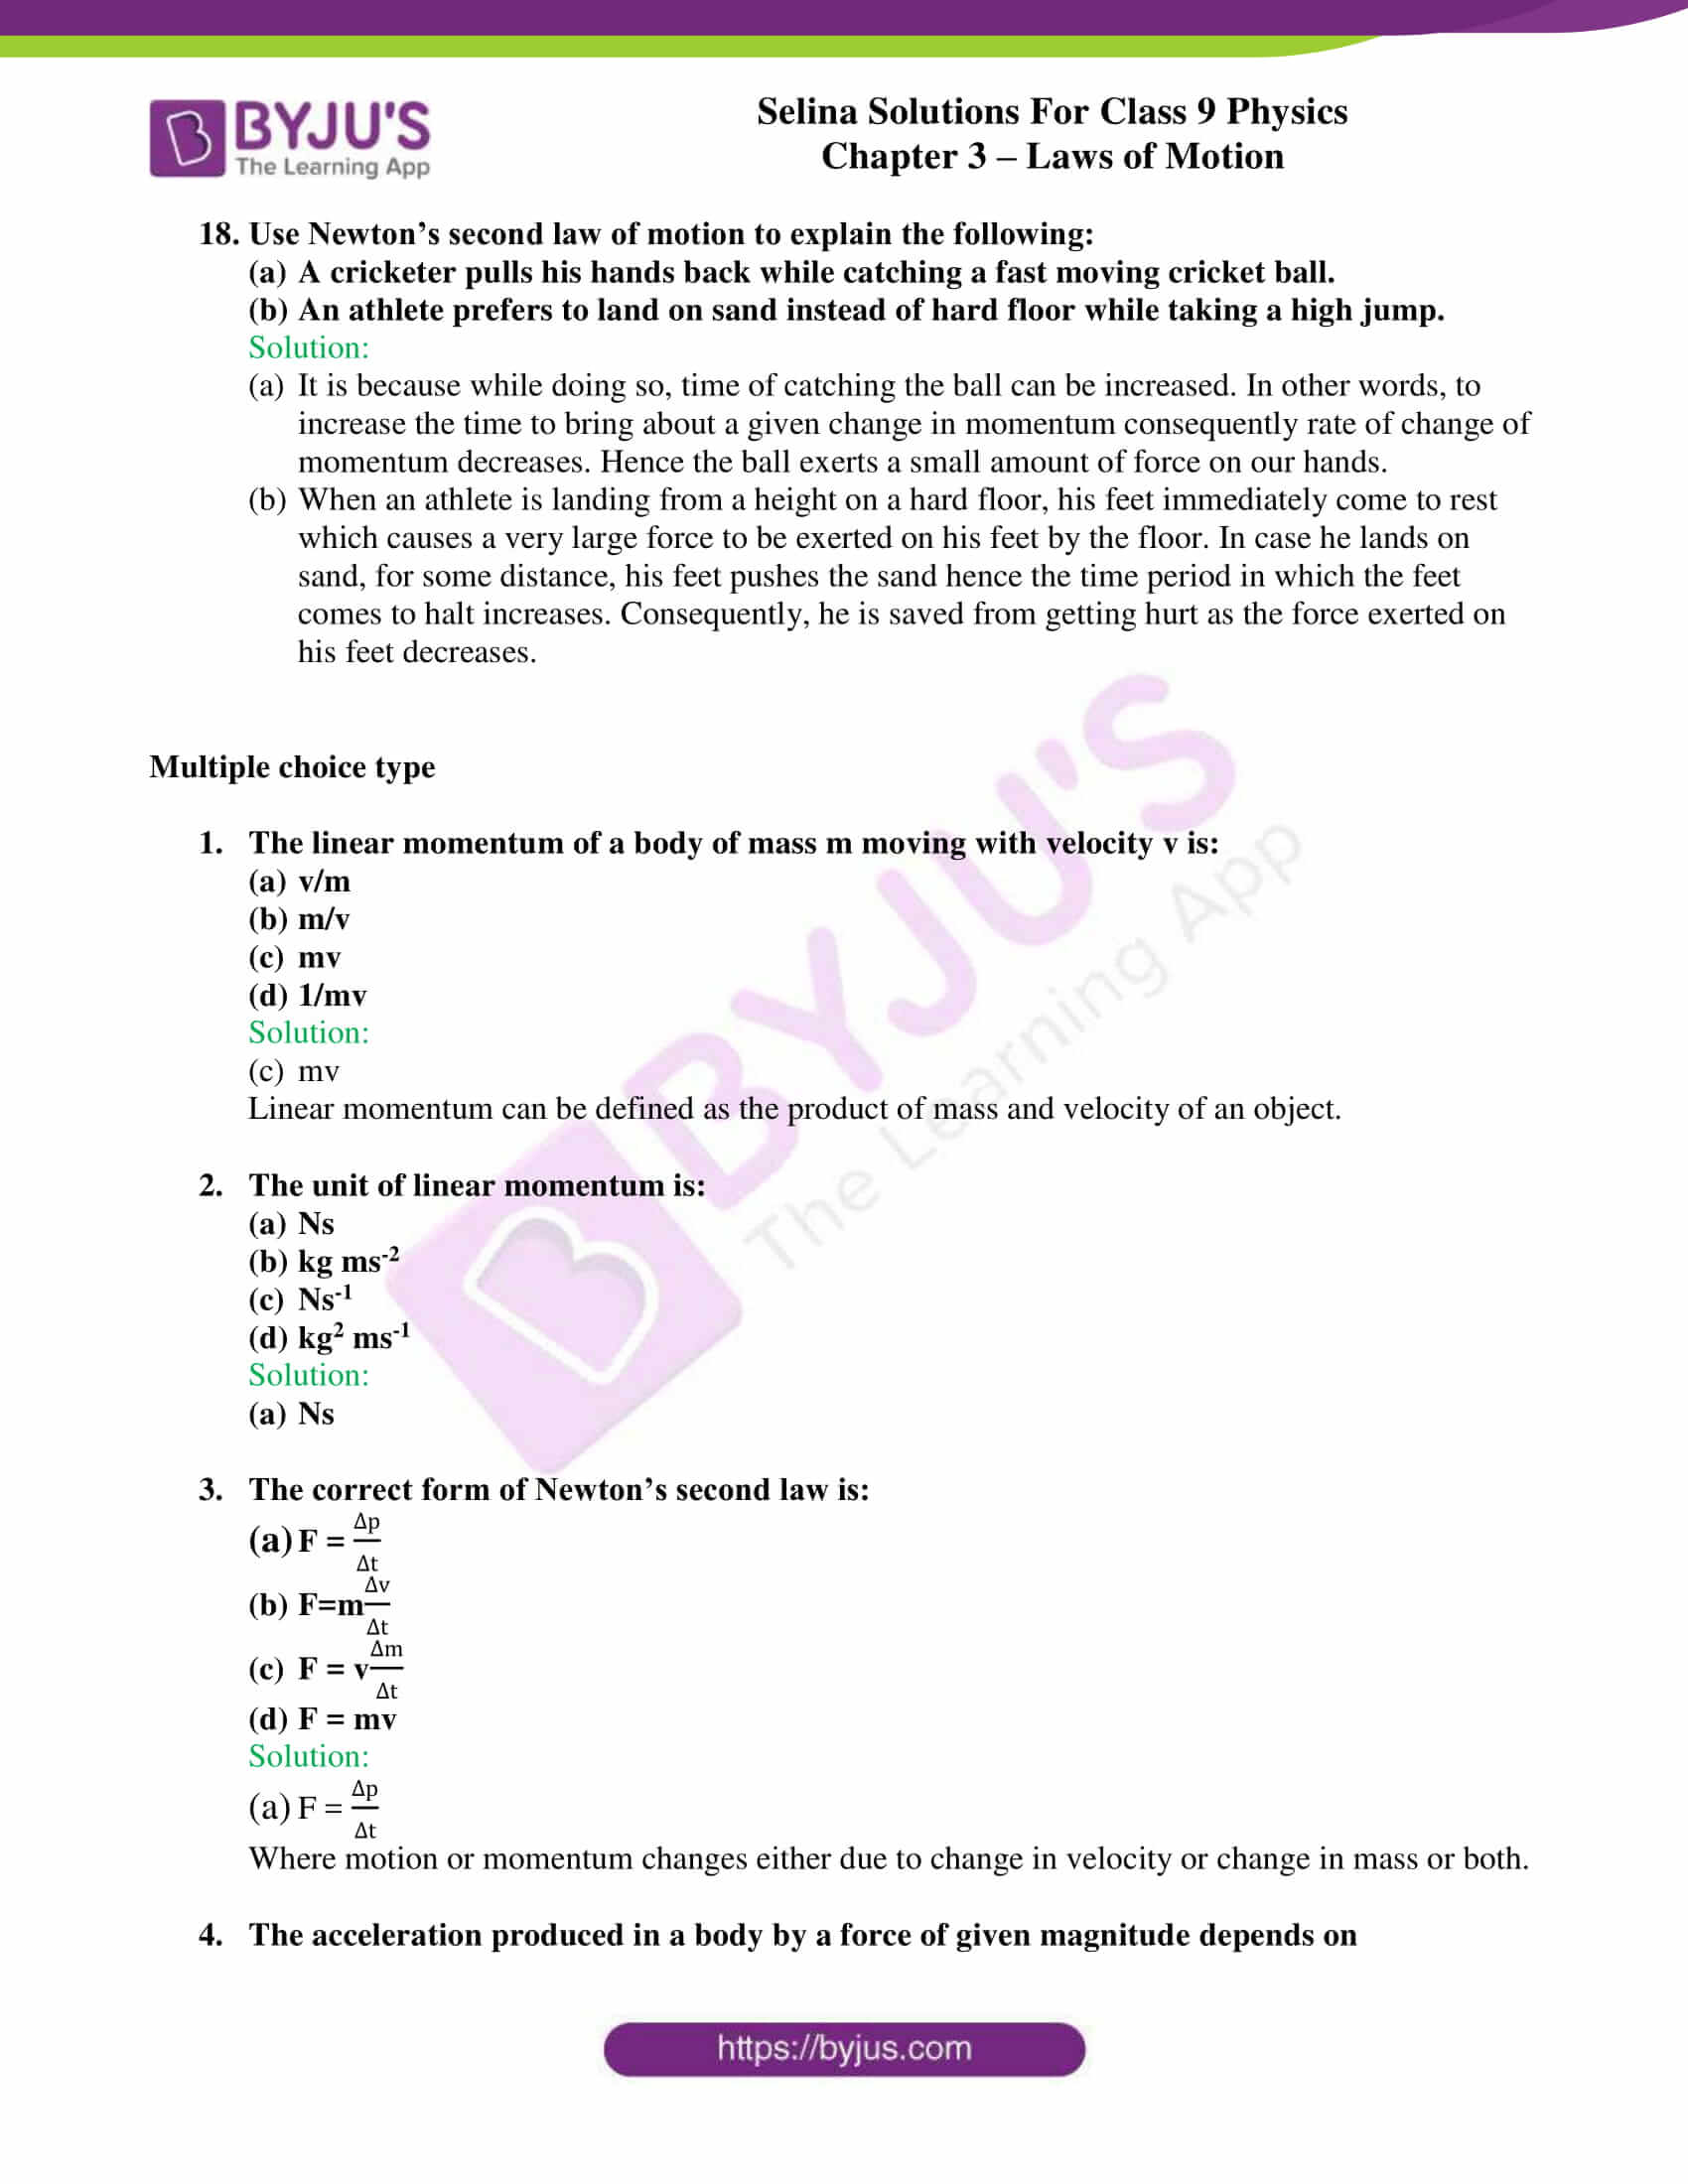 selina solutions class 9 physics chapter 3 Laws of Motion part 15